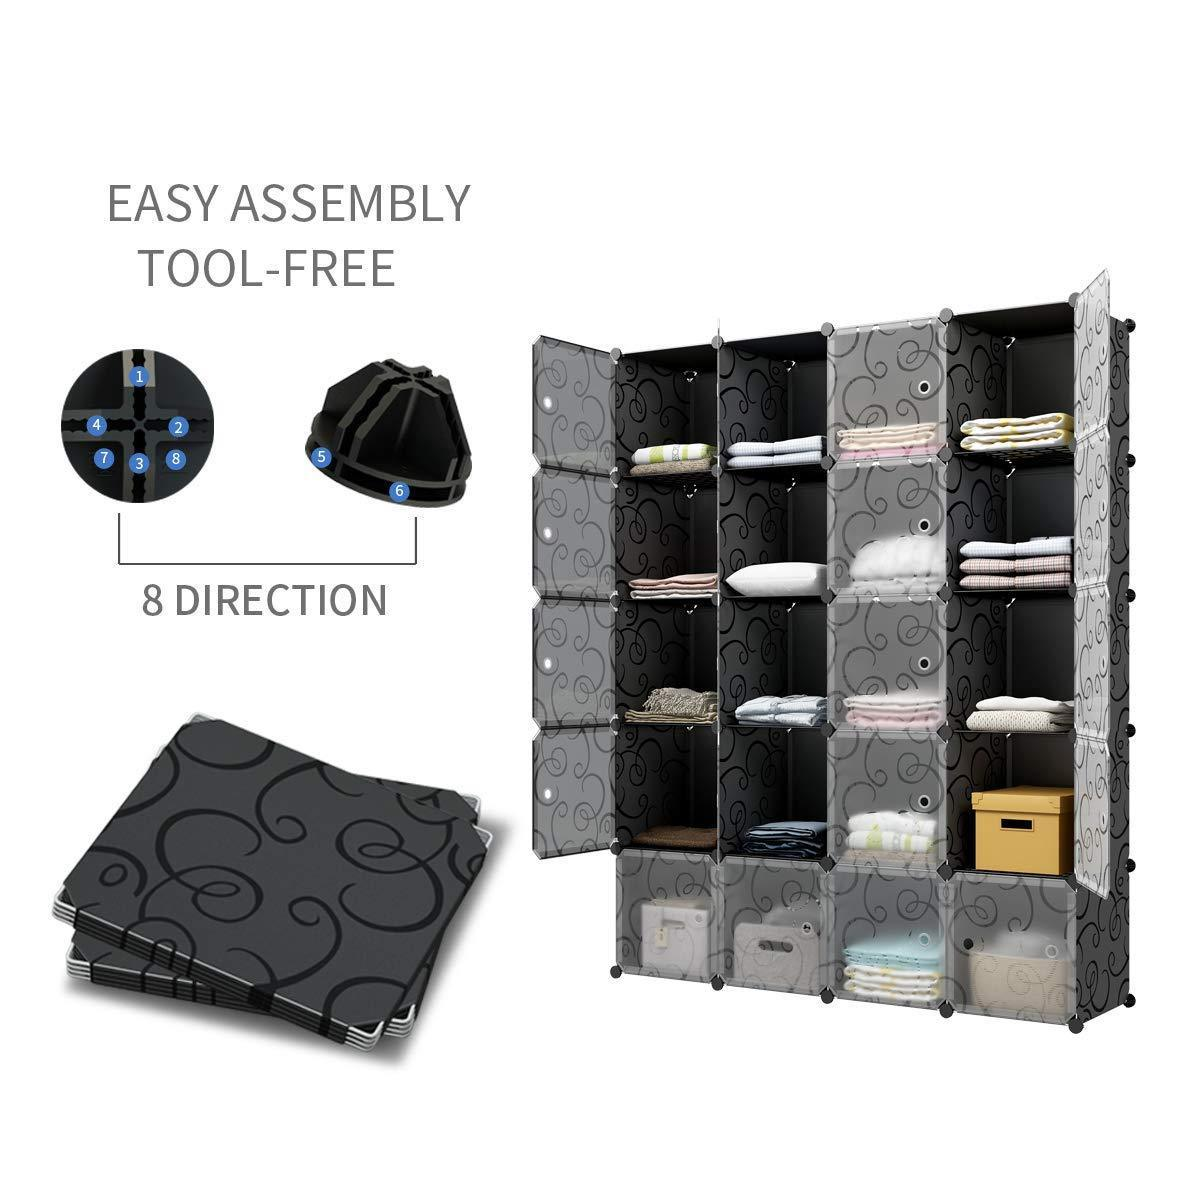 Save on kousi cube storage cube organizer cube storage shelves cubby organizing closet storage organizer cabinet shelving bookshelf toy organizer black varation 40 cubes